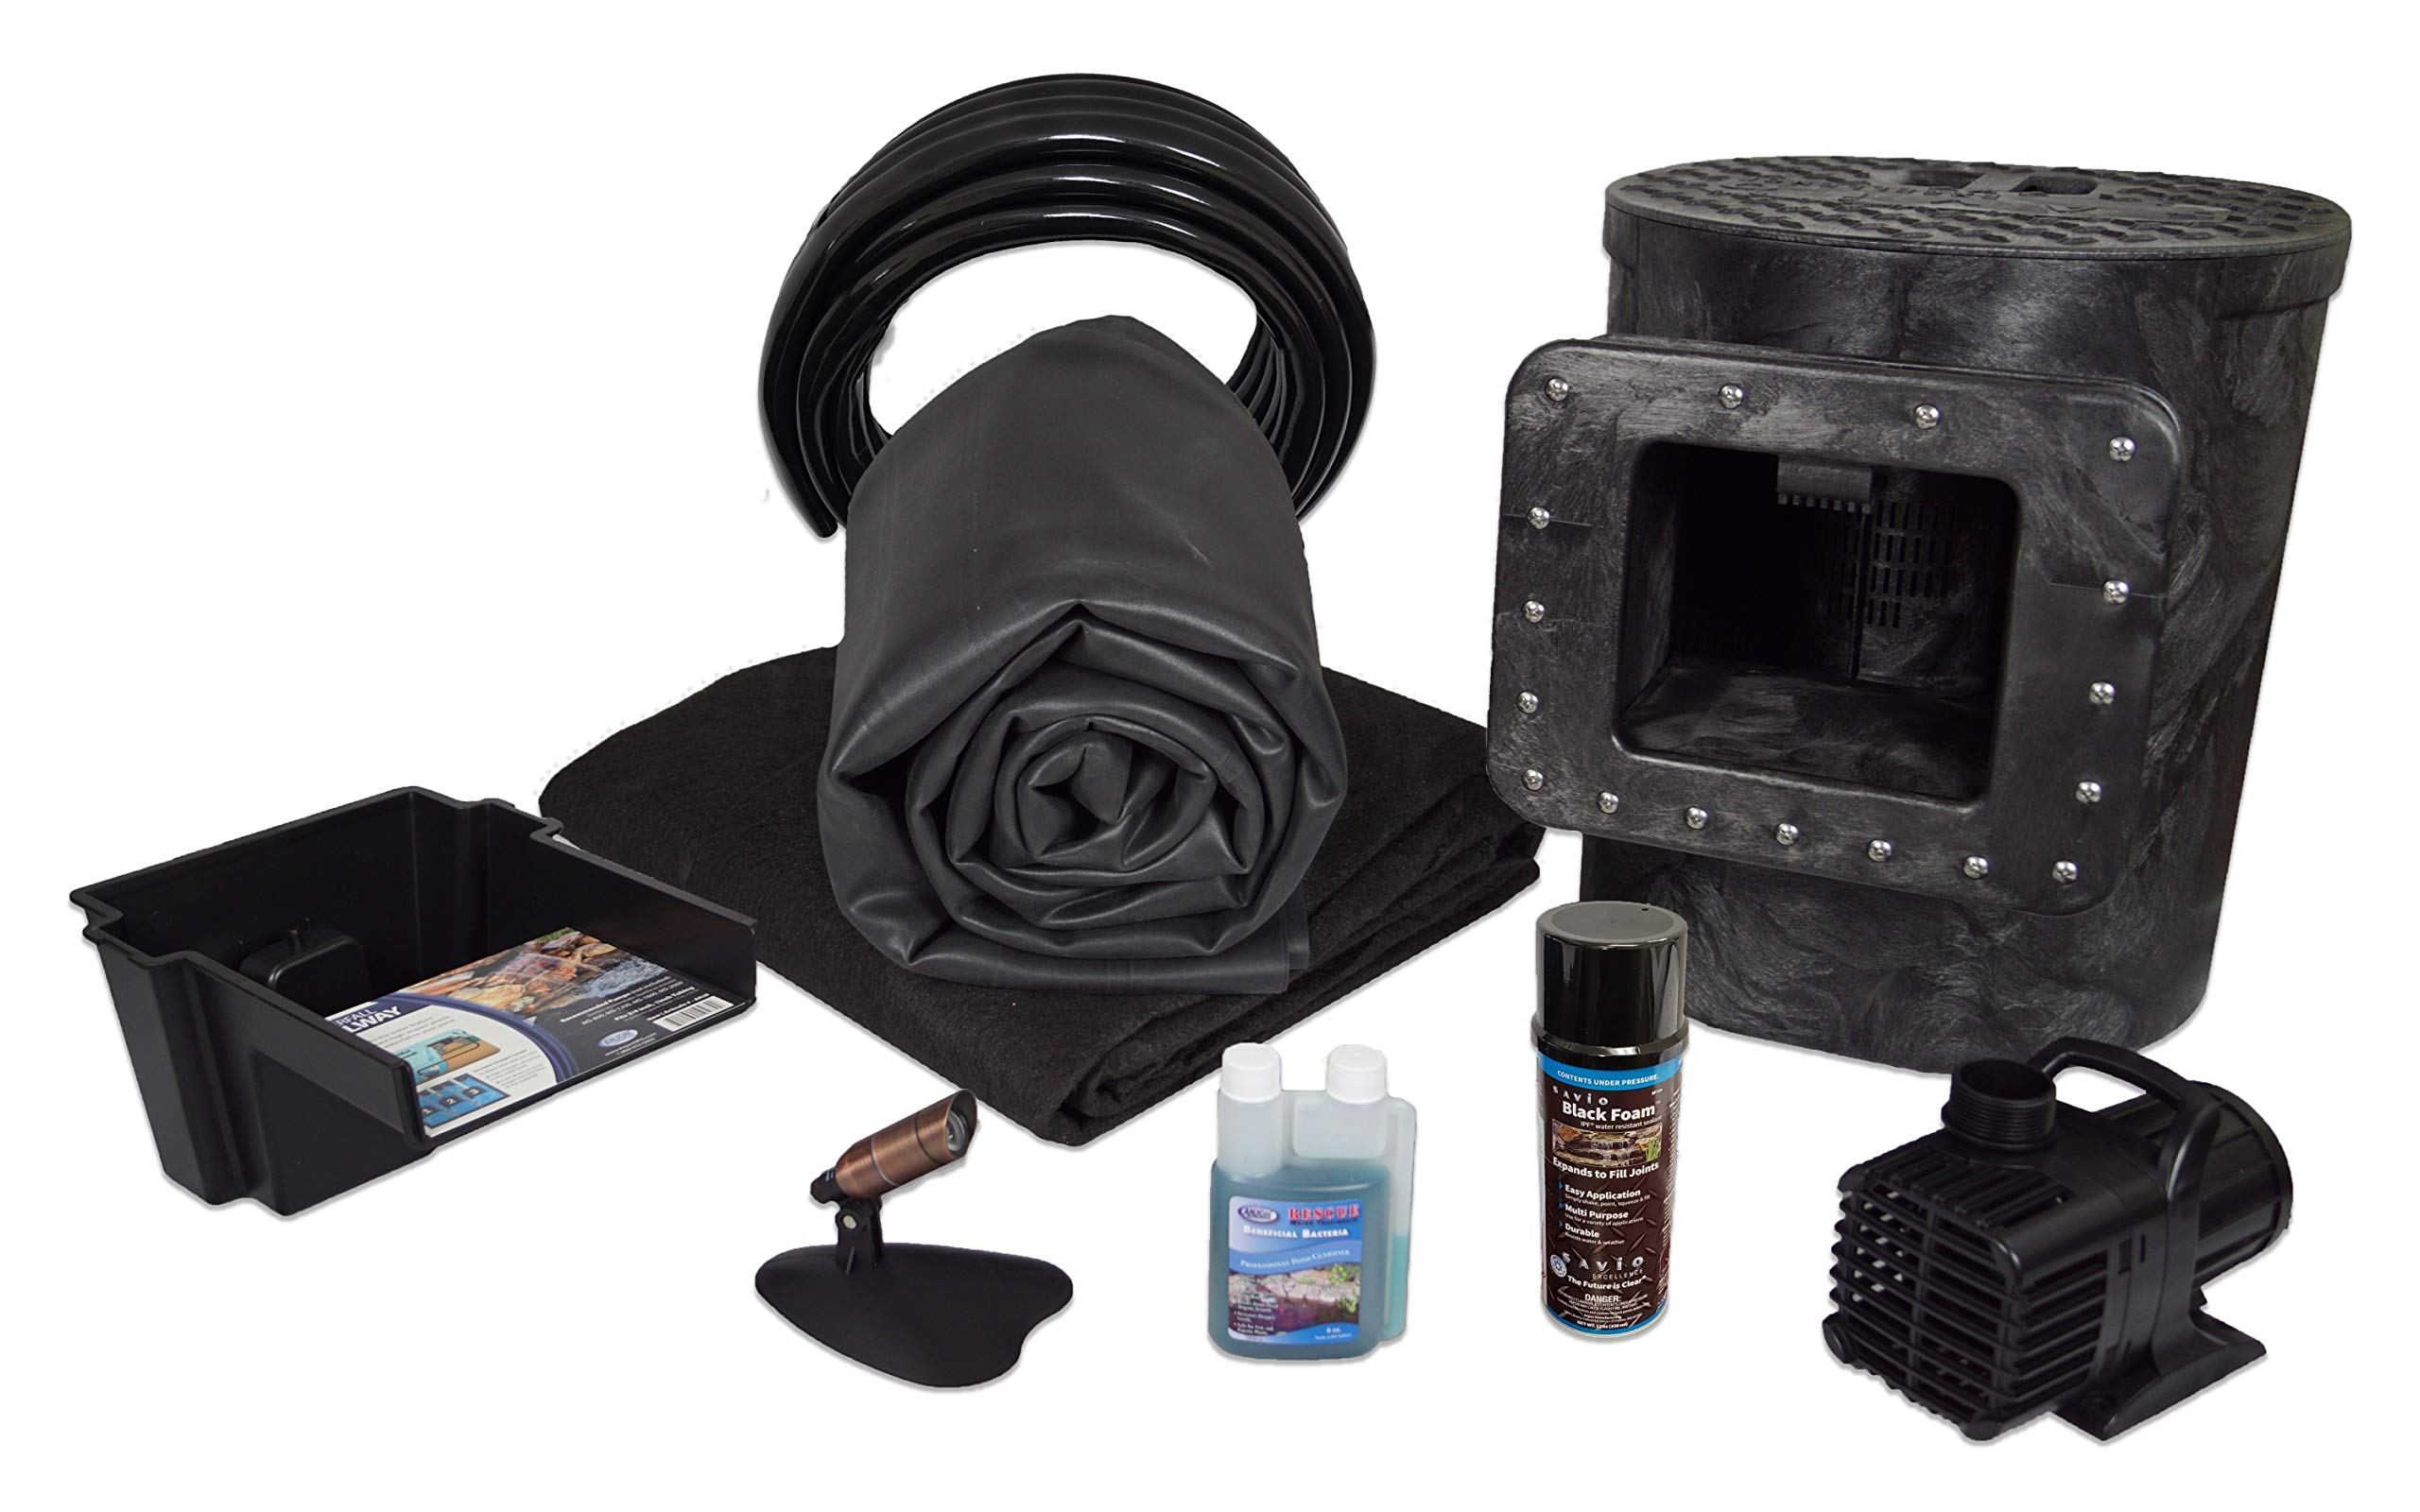 Half Off Ponds Savio Select 1200 Complete Water Garden and Pond Kit, with 10 x 10 Foot EPDM Rubber Liner